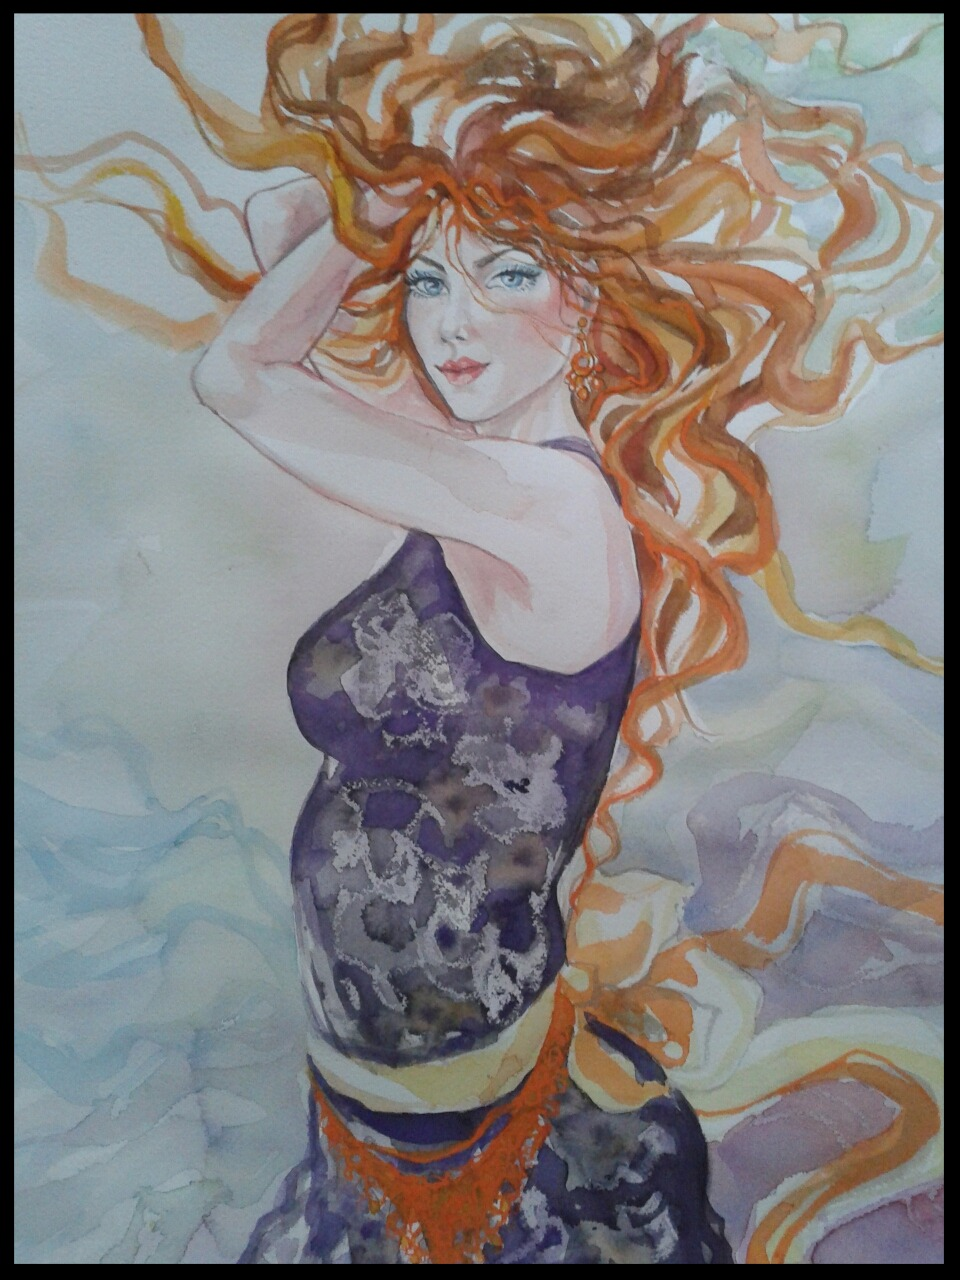 EDITBAKK ORIGINAL WATERCOLOR CARMEN 22 x 15 $2800